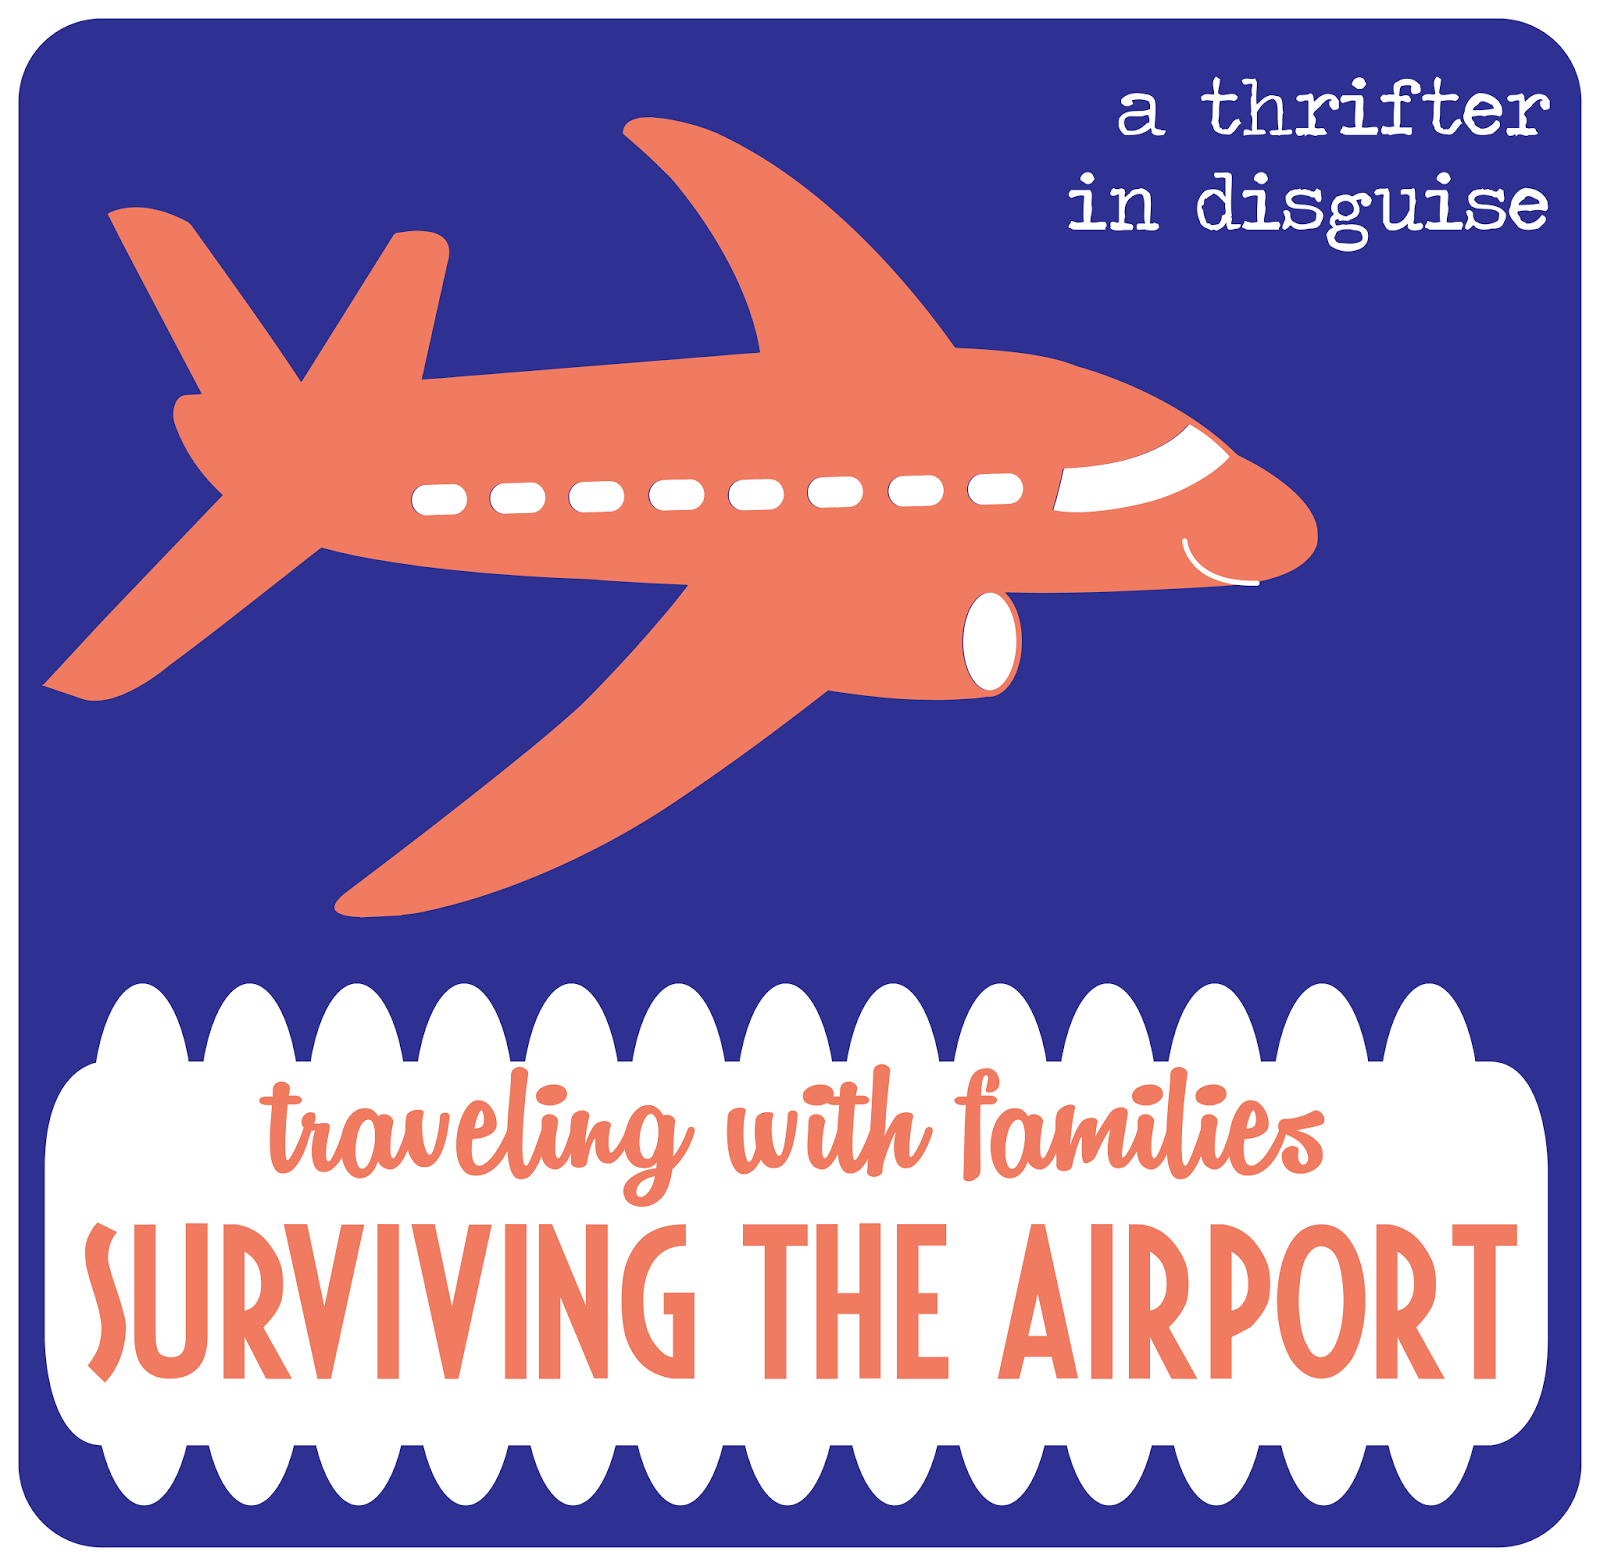 http://www.thrifterindisguise.com/2014/02/negotiating-airport-with-young-kids.html